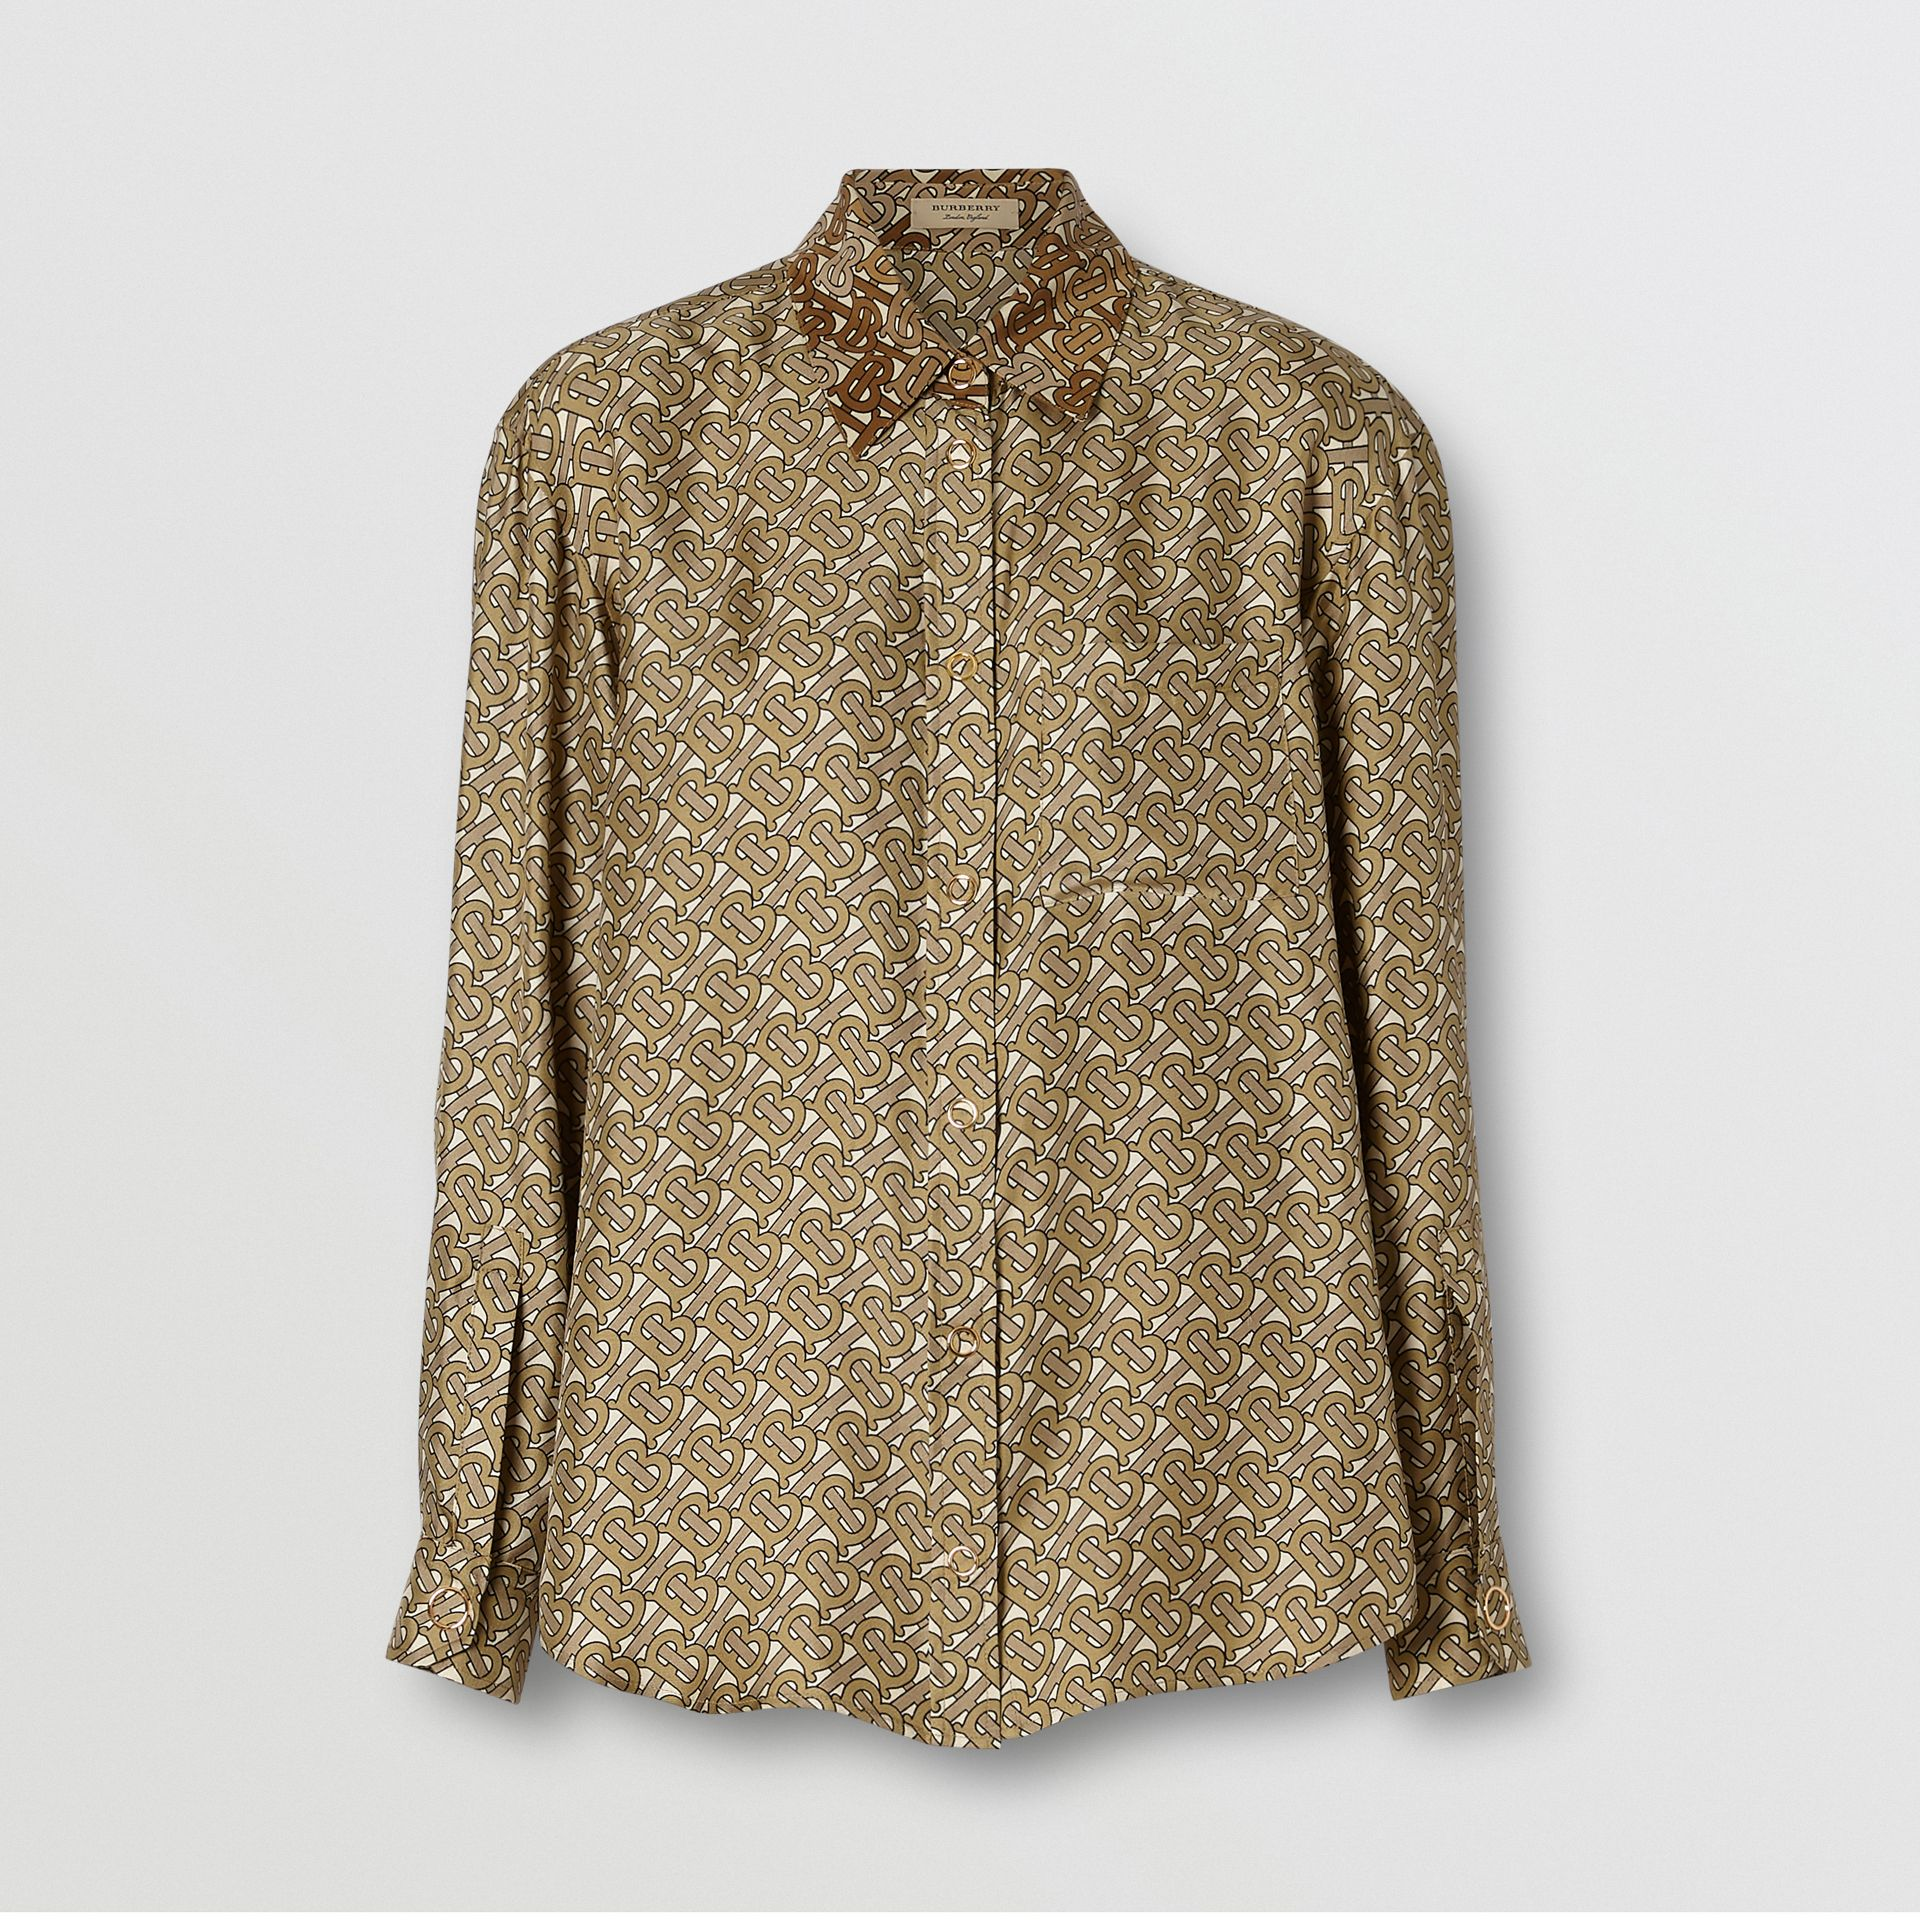 Contrast Collar Monogram Print Silk Shirt in Military Olive - Women | Burberry Hong Kong S.A.R - gallery image 3